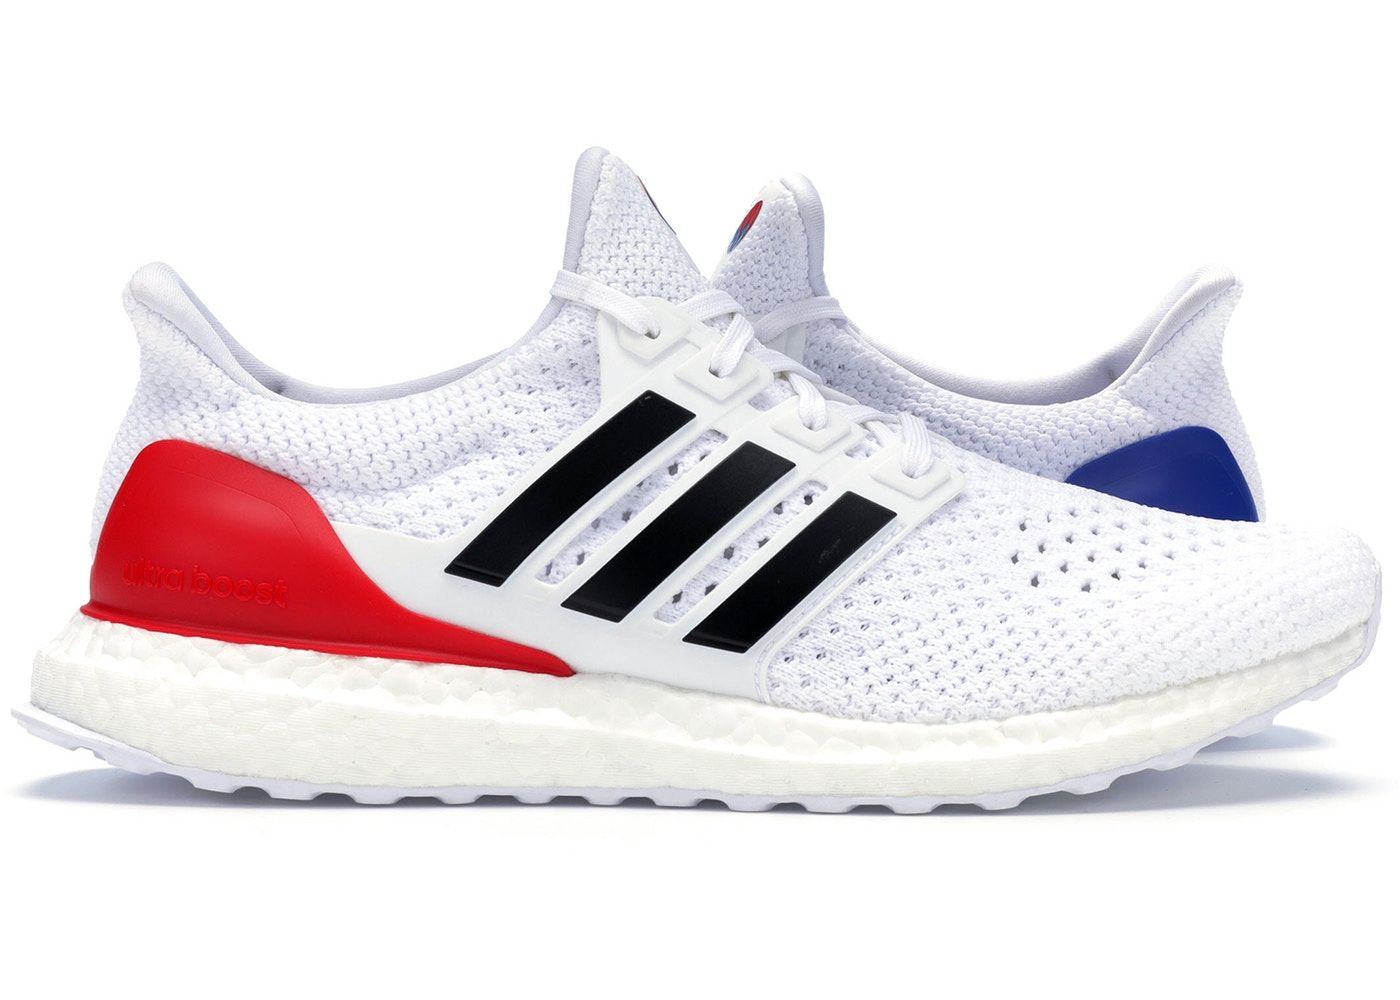 timeless design 0a649 cabc2 adidas Ultra Boost 4.0 Seoul 1988 in 2019 | Shoes | Adidas ...